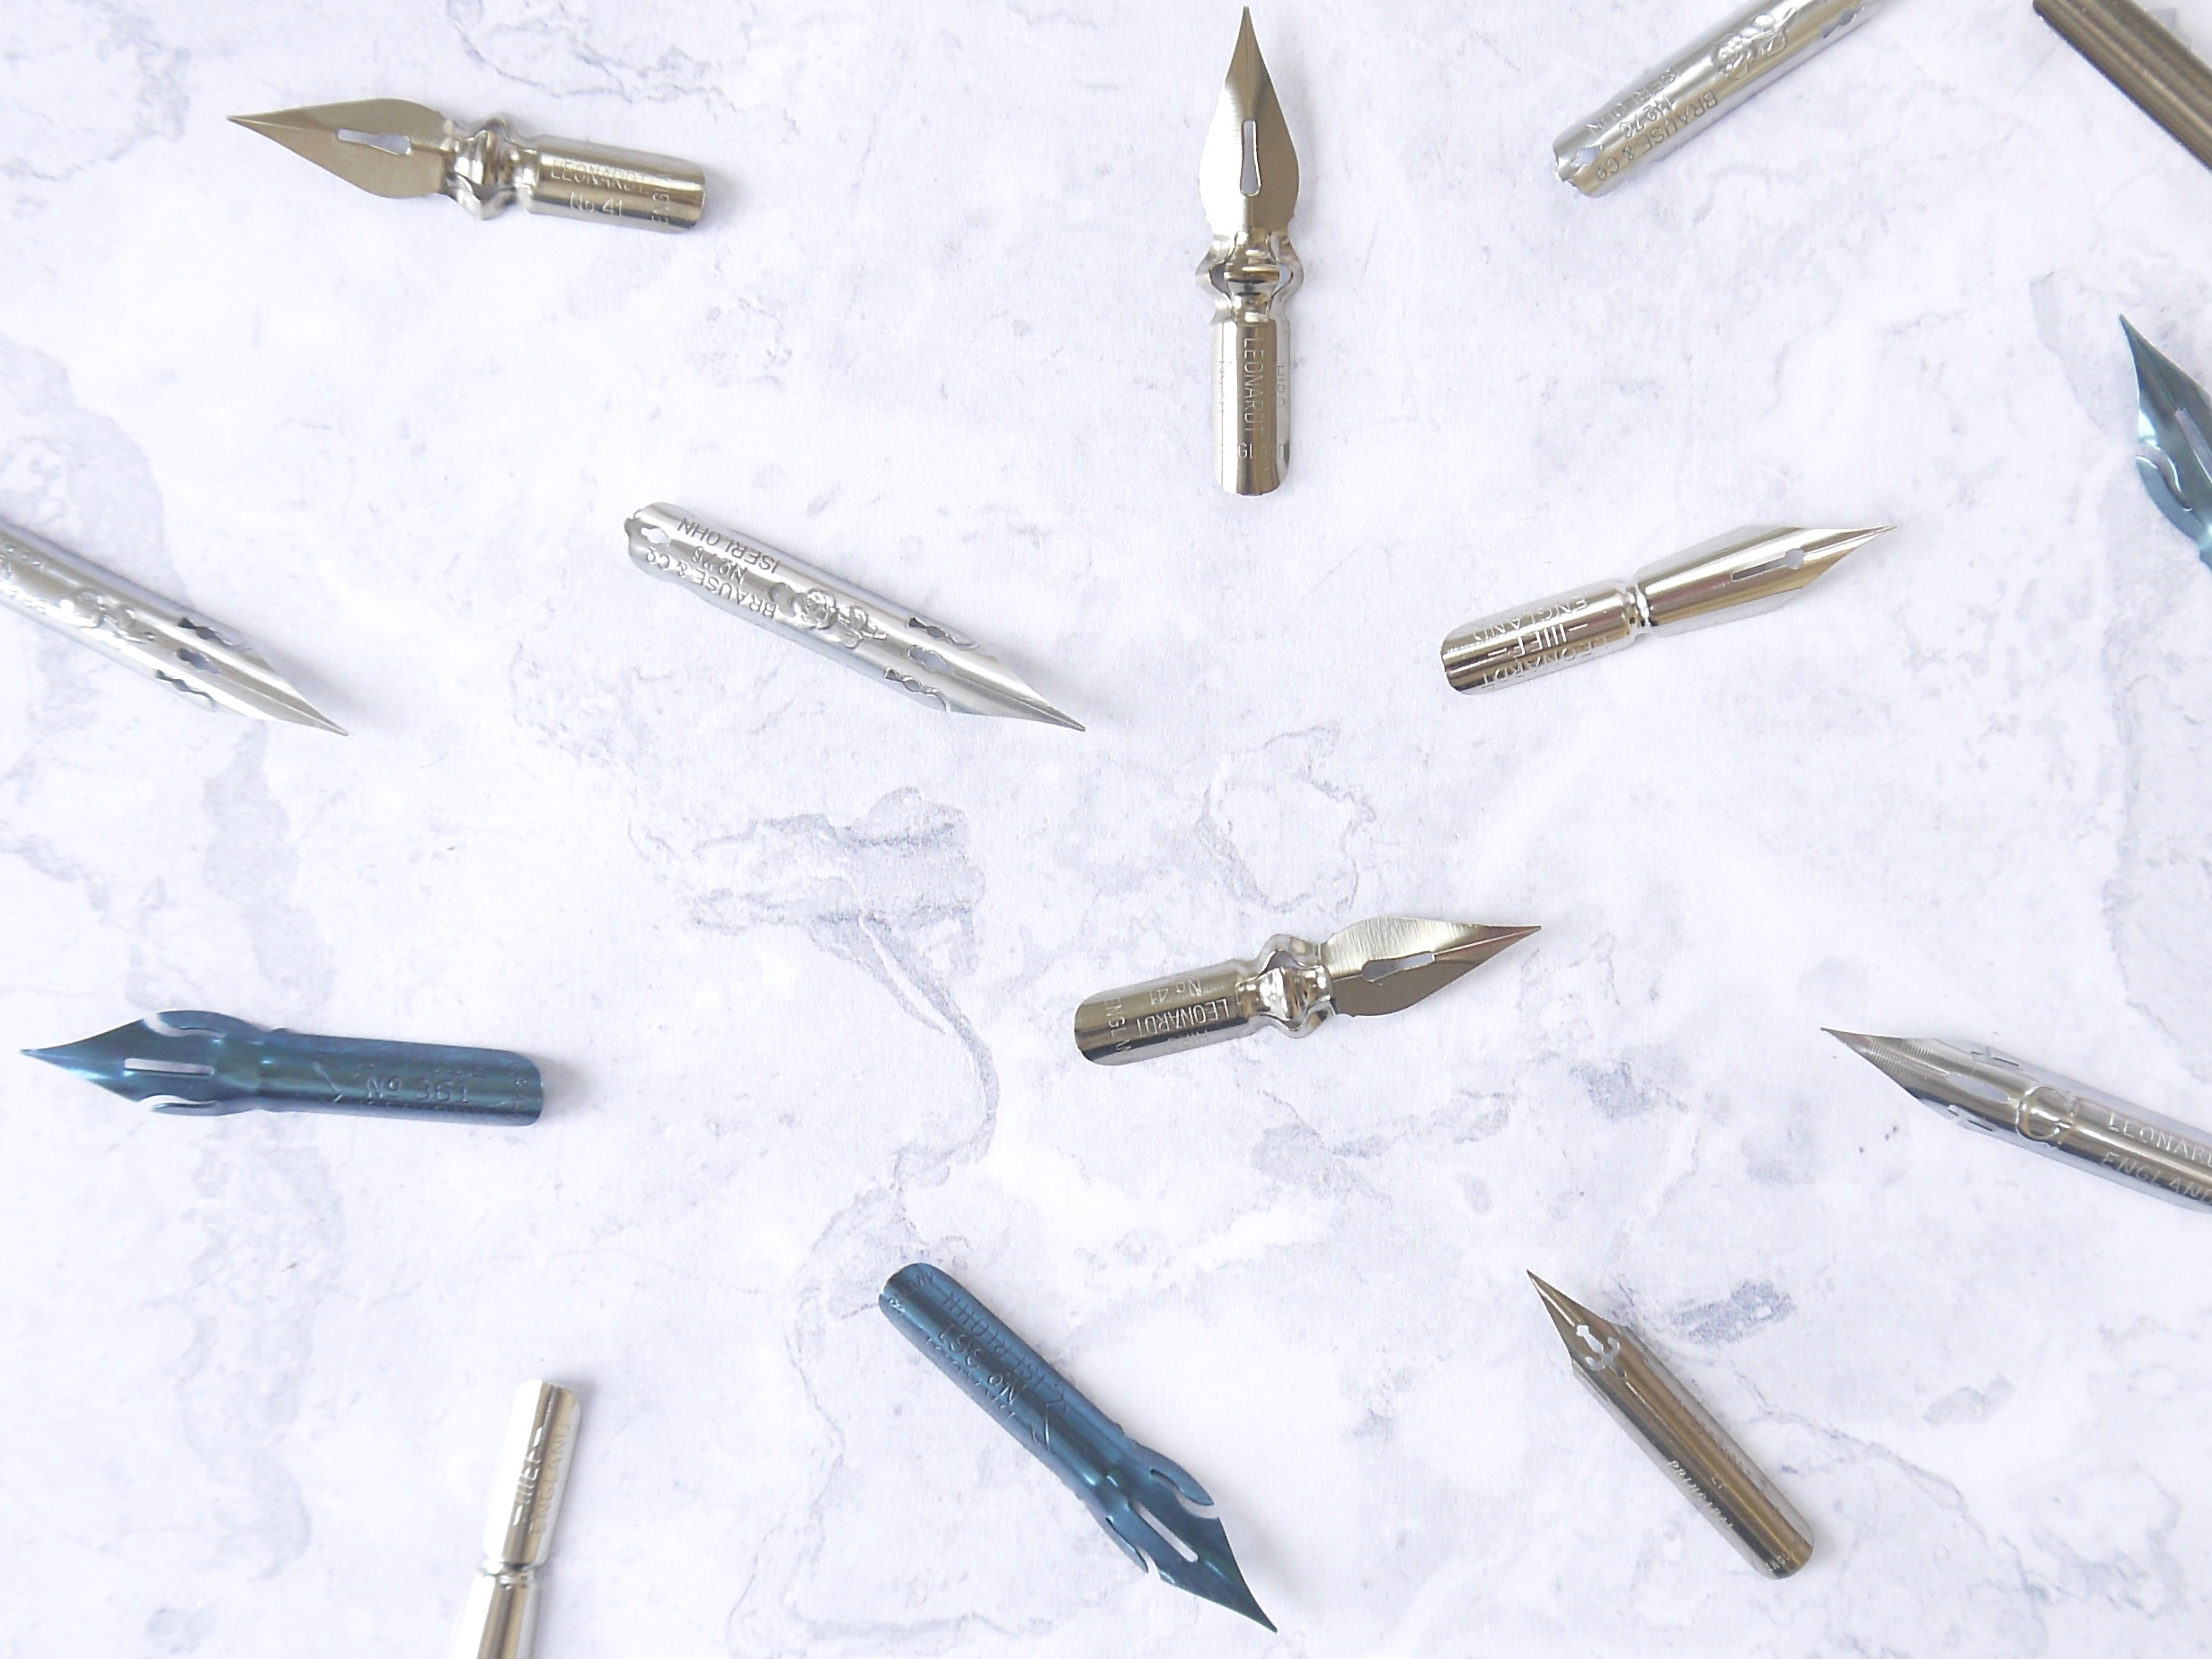 Modern calligraphy nibs will need to be cleaned before using to write with